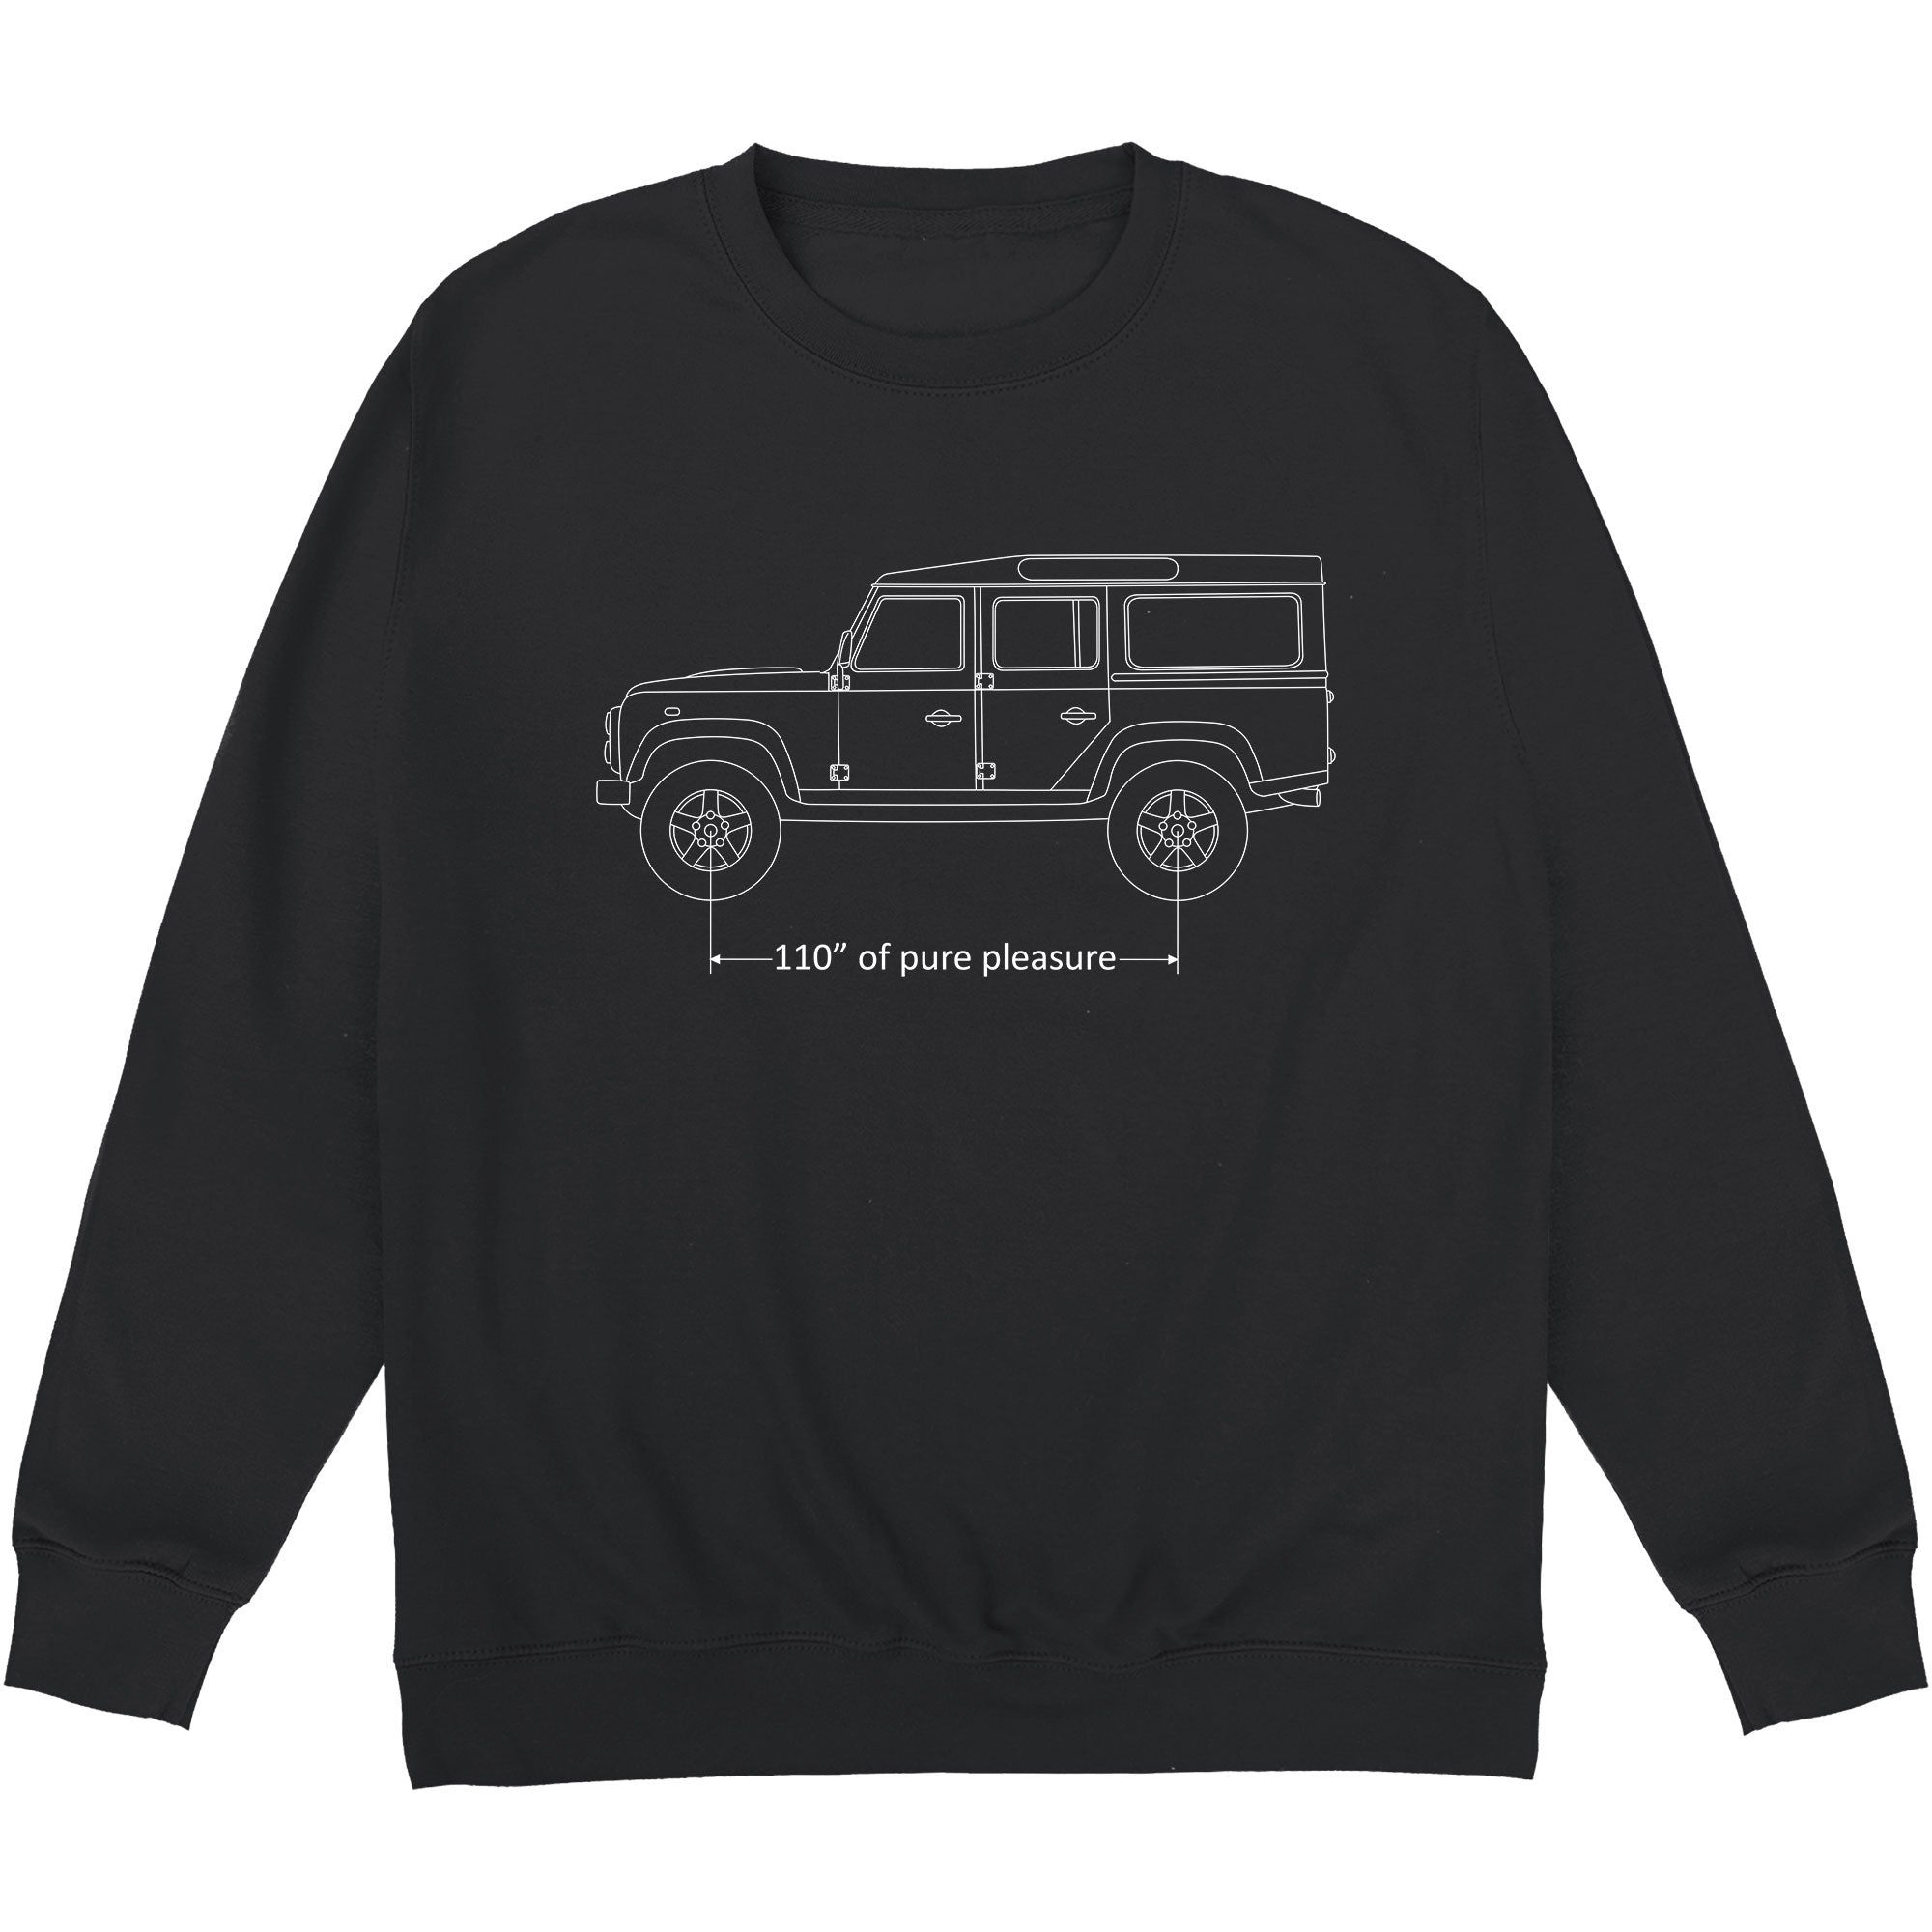 CHEAP 110 Inches of Pure Pleasure Crewneck Sweatshirt 28109022391 – Clothing Accessories